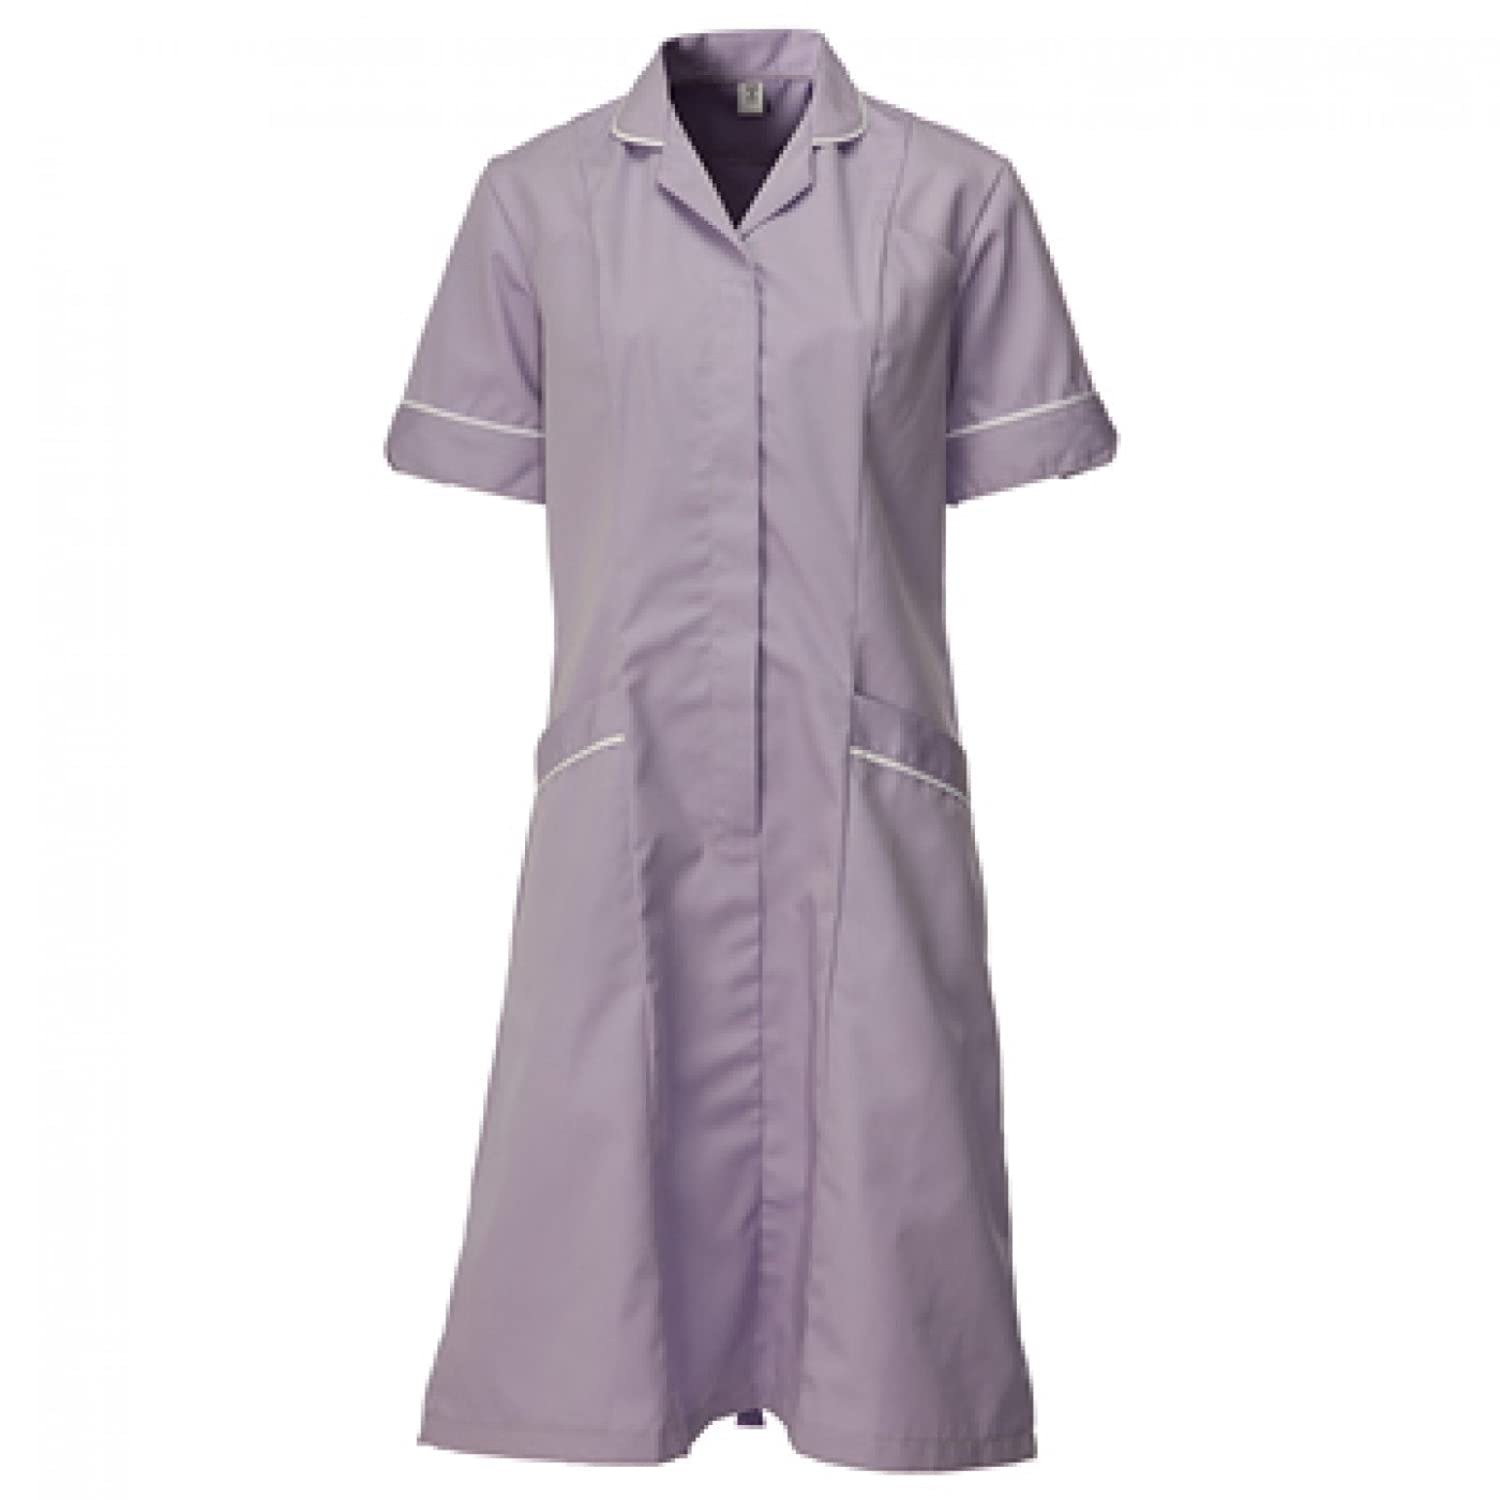 AS Step In Panelled Female Dress (Plain) Lilac